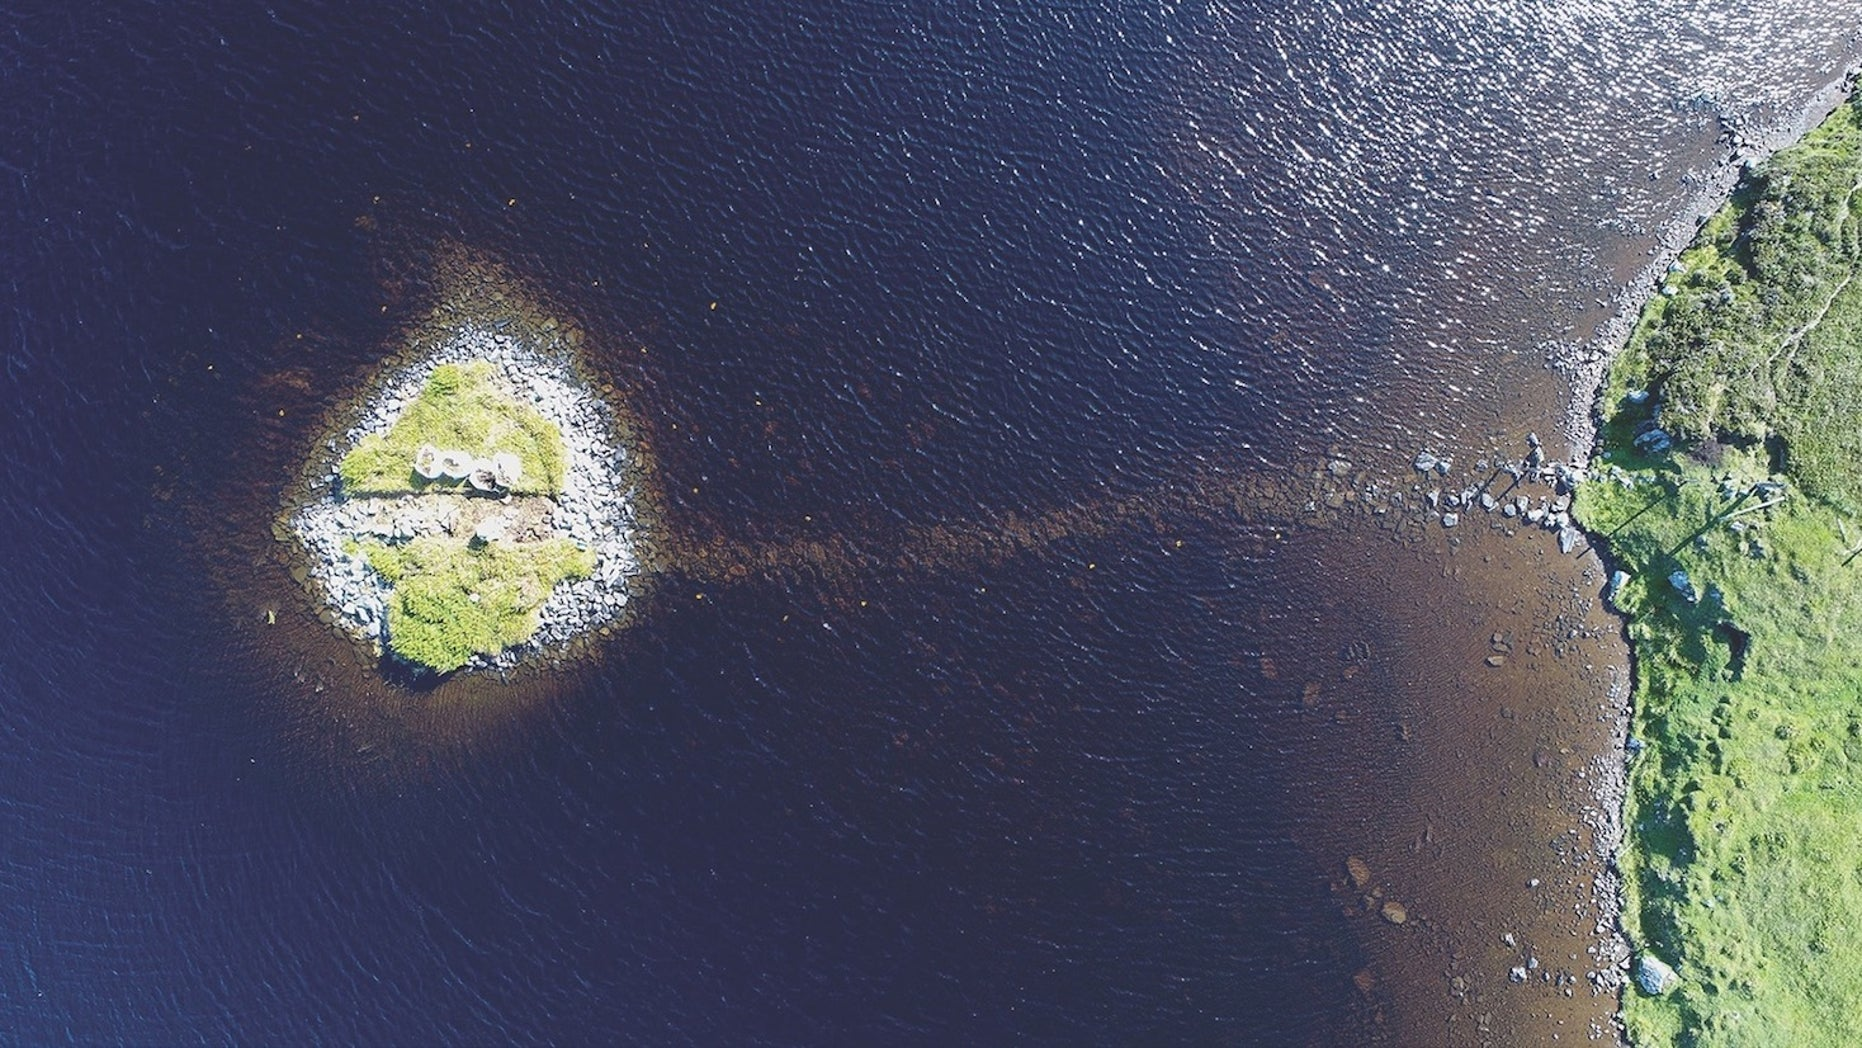 A bird's-eye view of Loch Bhorgastail, an islet that was clearly human-made with boulders.